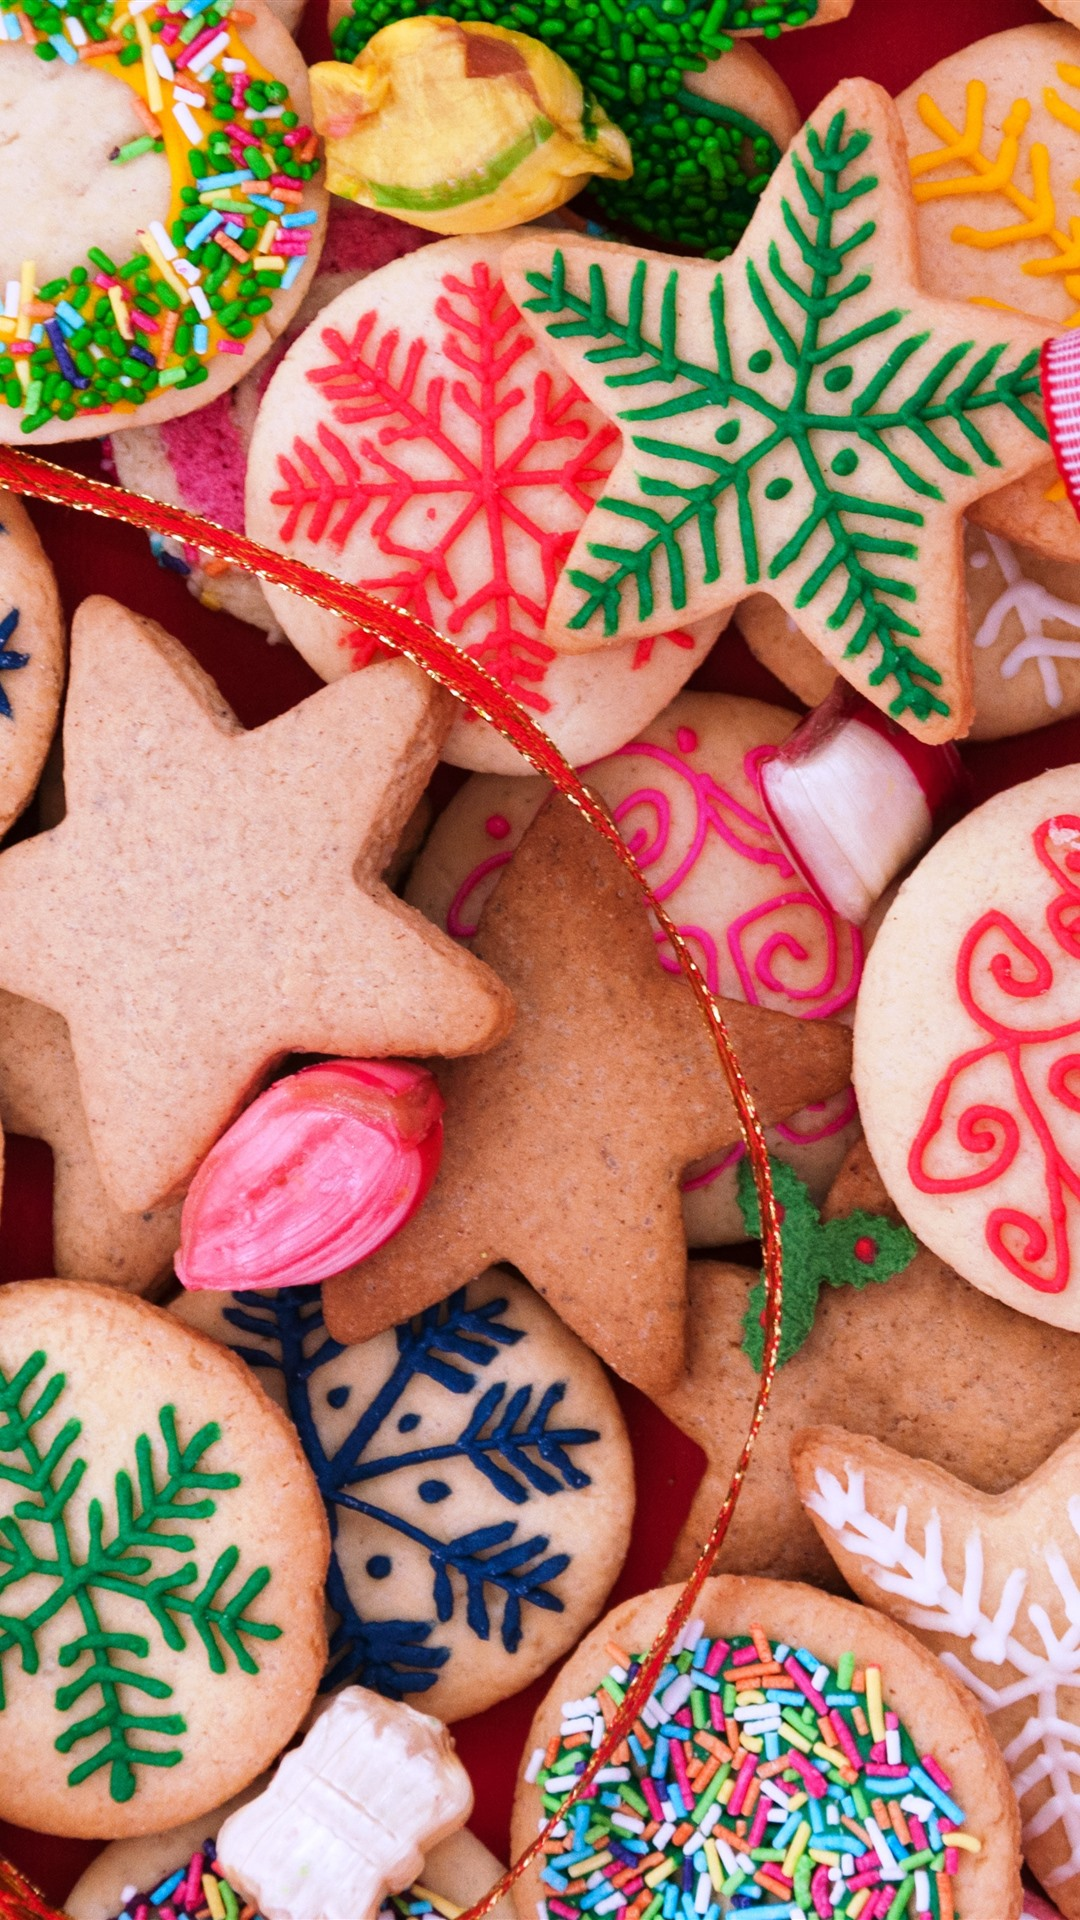 Many Kinds Of Cookies Colors Merry Christmas 1242x2688 Iphone 11 Pro Xs Max Wallpaper Background Picture Image